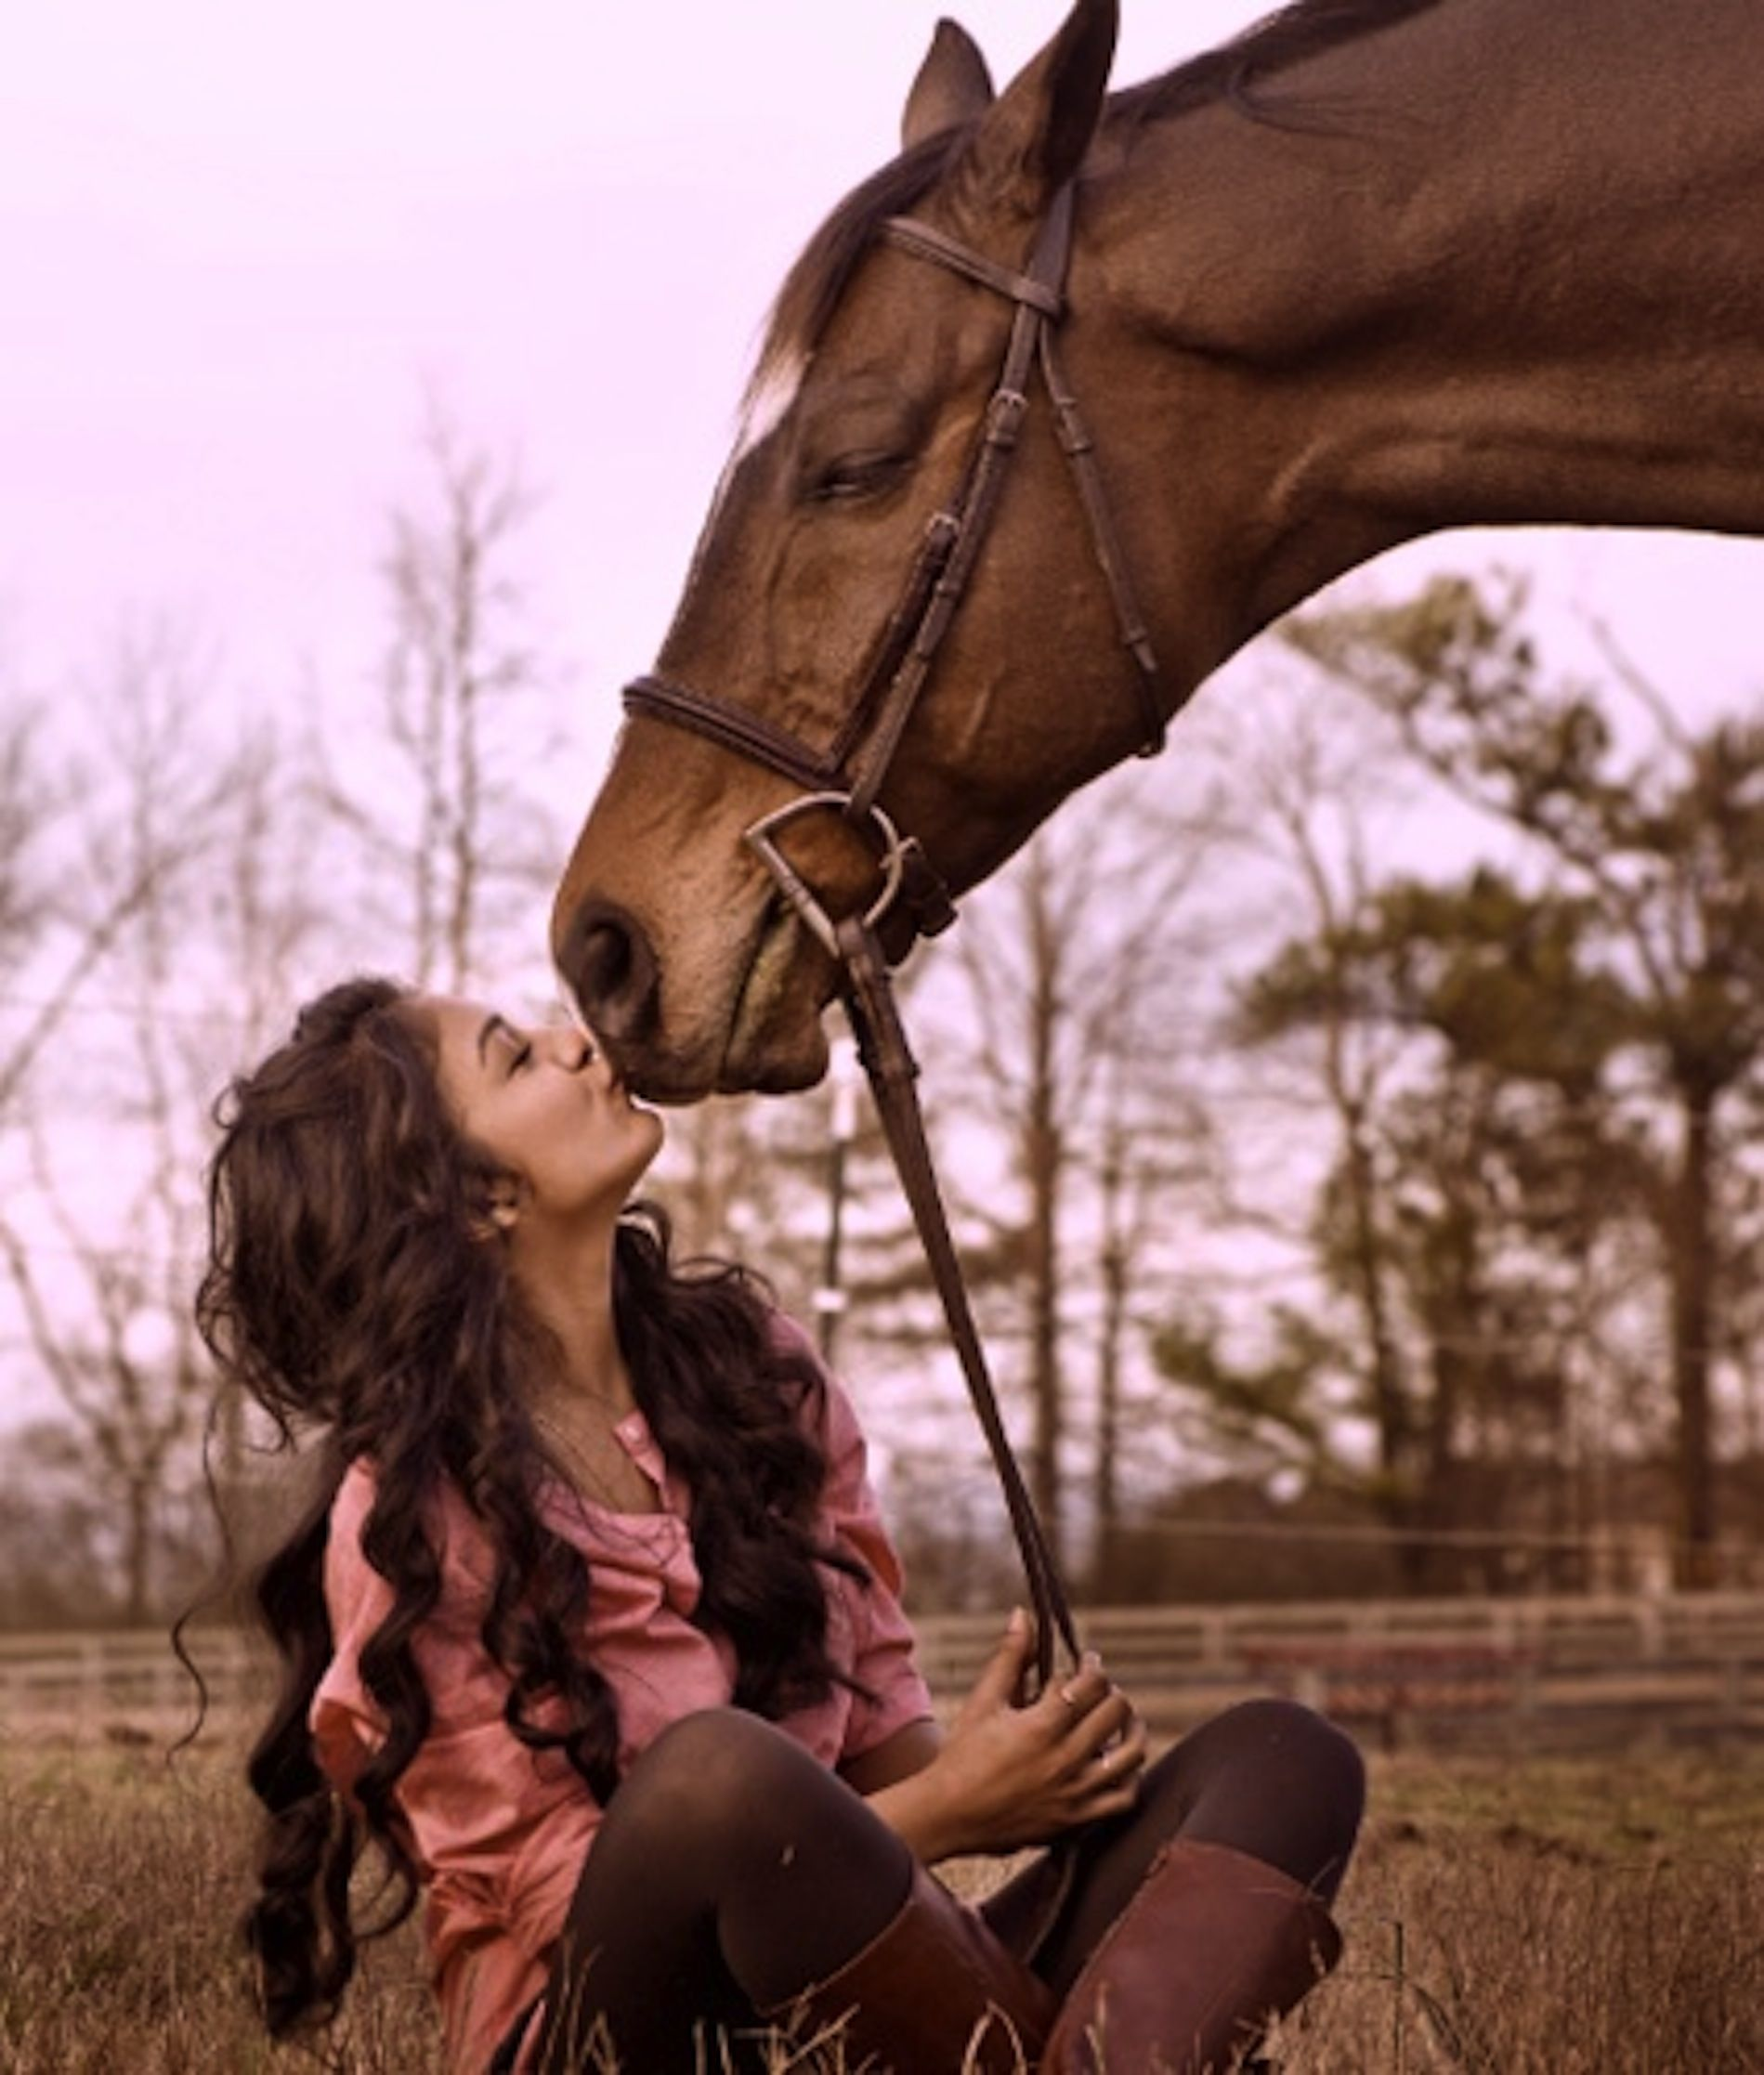 Caballo Apareandose Humano Kiss Kiss Girls And Their Horses I Pinterest